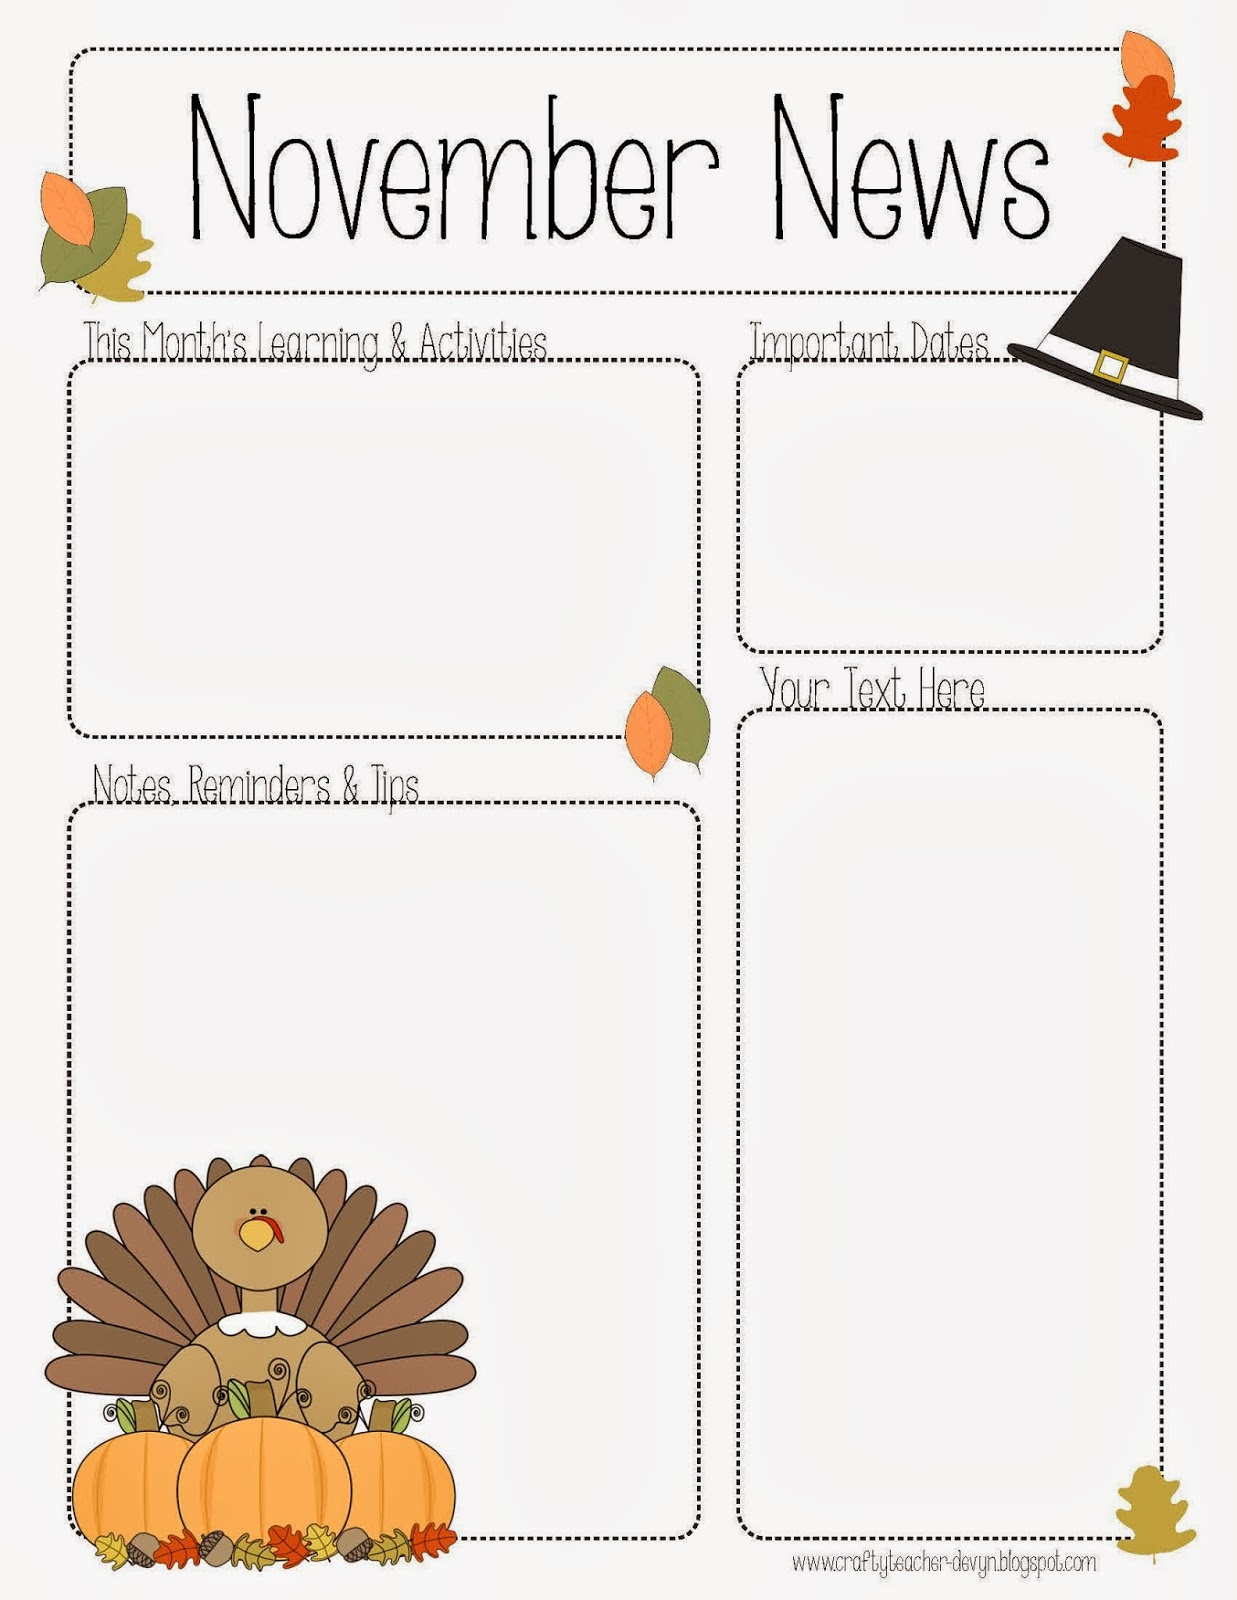 NovemberNewsletter Free Monthly Pre Newsletter Template Editable on free newsletter template printable, free fall newsletter templates for teachers, free microsoft word newsletter template, free classroom newsletter template school,